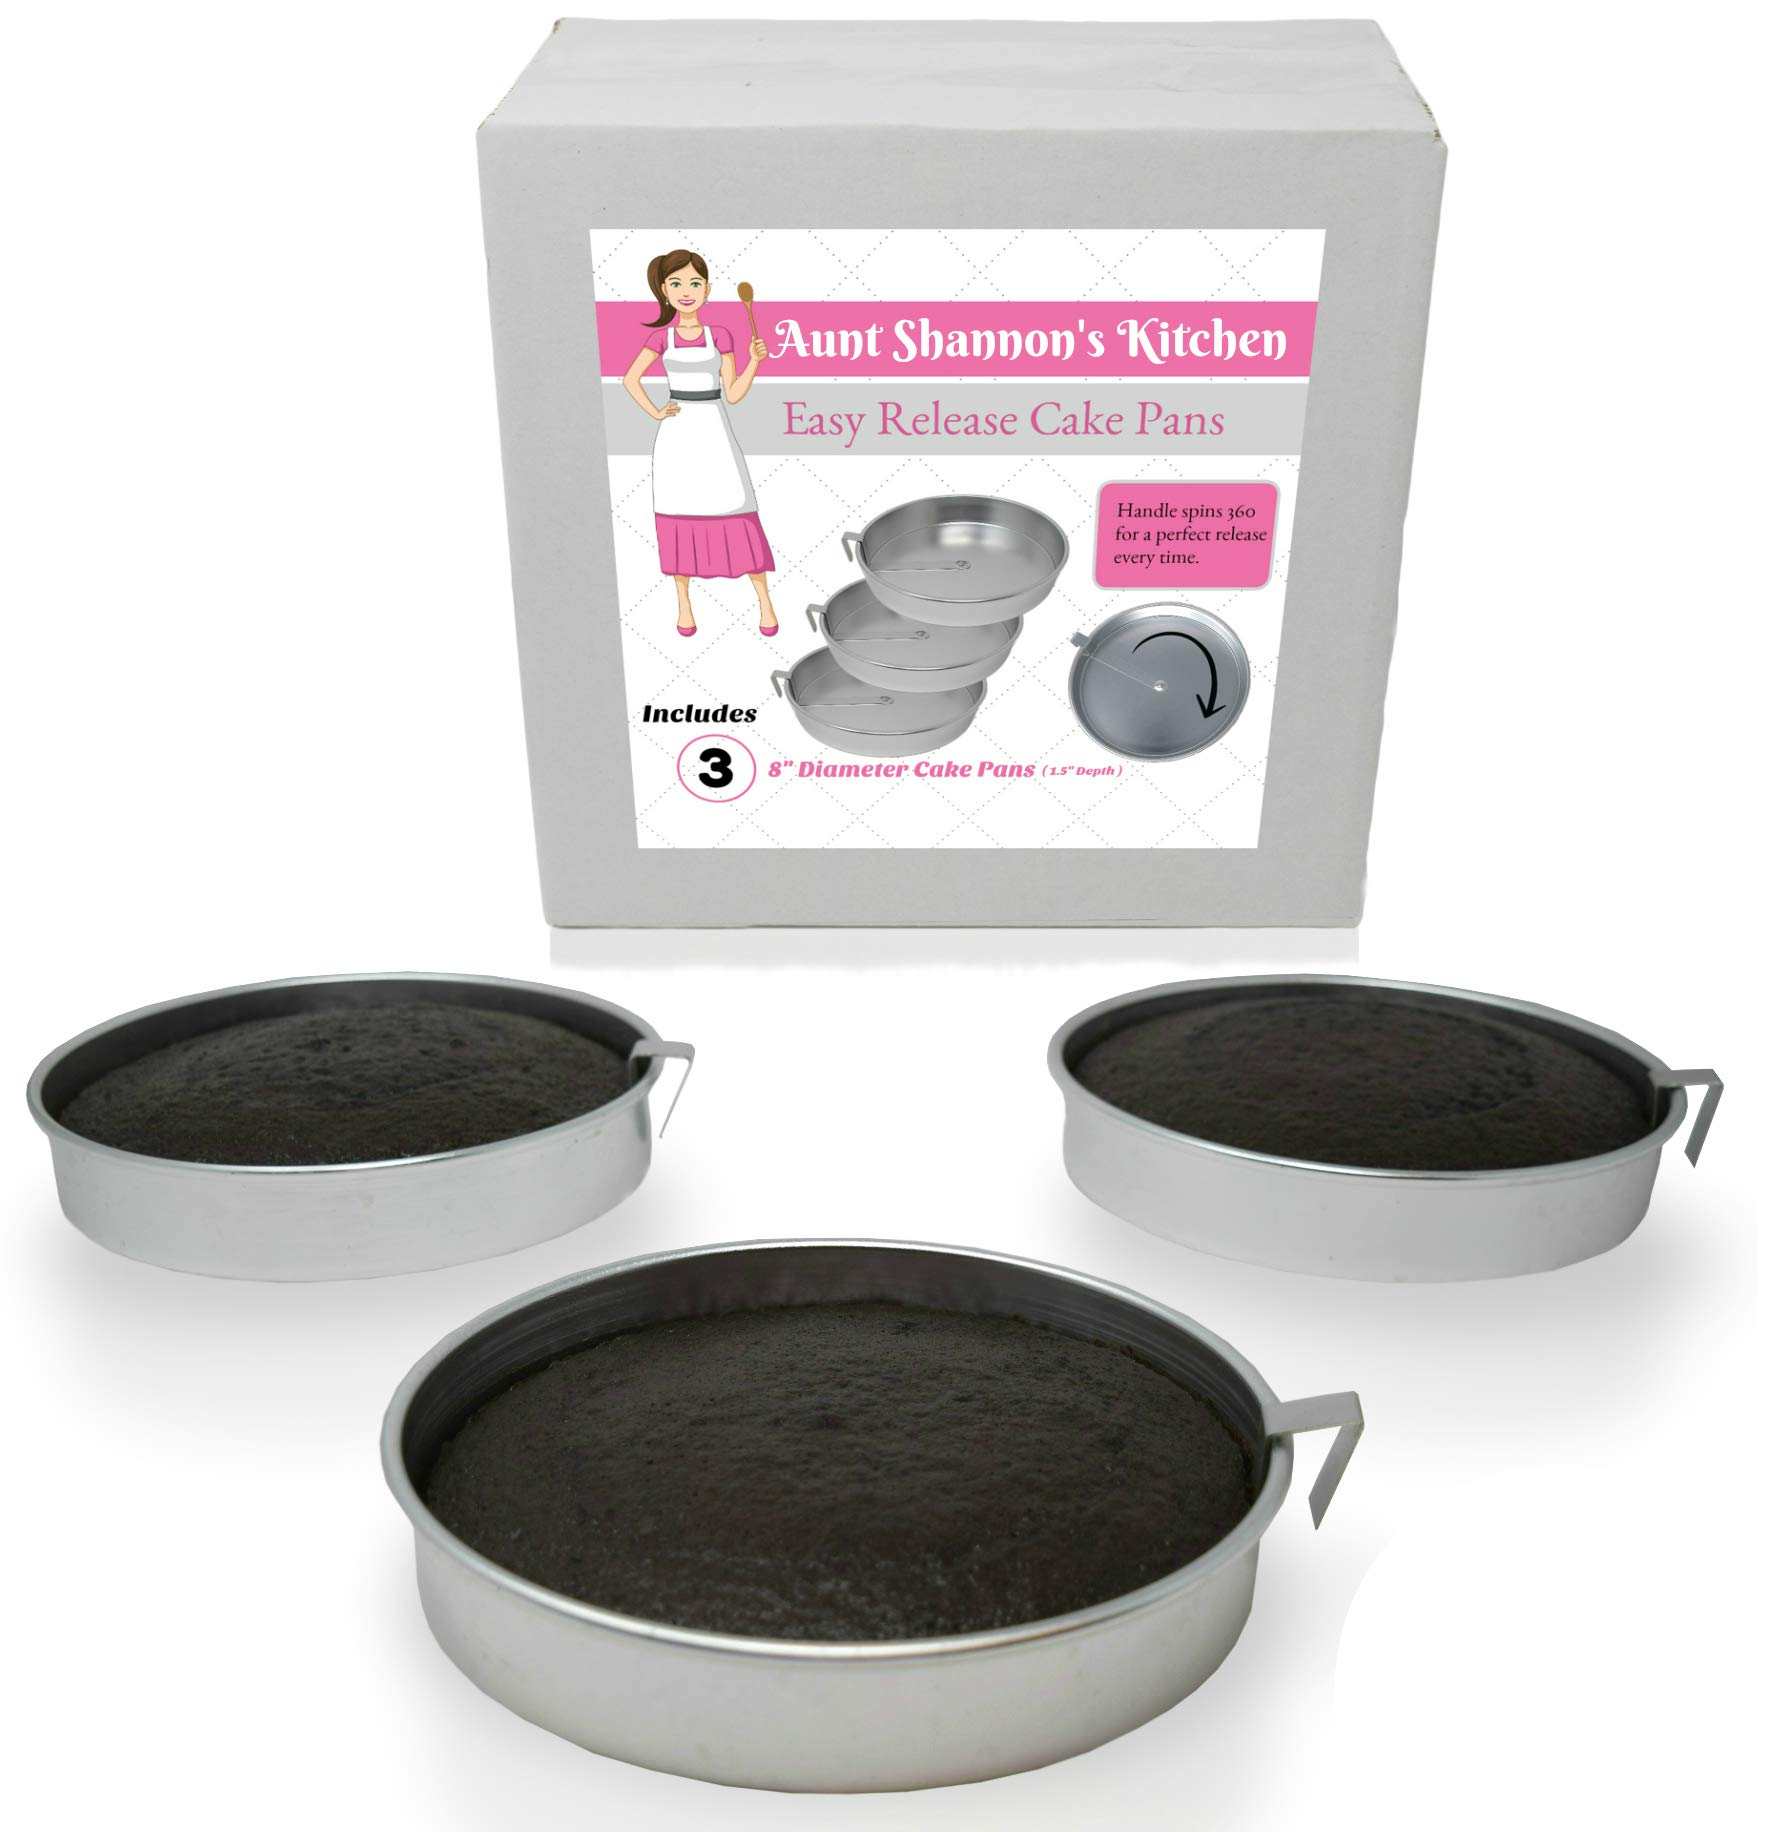 Aunt Shannon's Easy Release 8'' Cake Pans - Set of 3 Quick Release Pans for Easy Cake Removal Every Time by Aunt Shannon's Kitchen